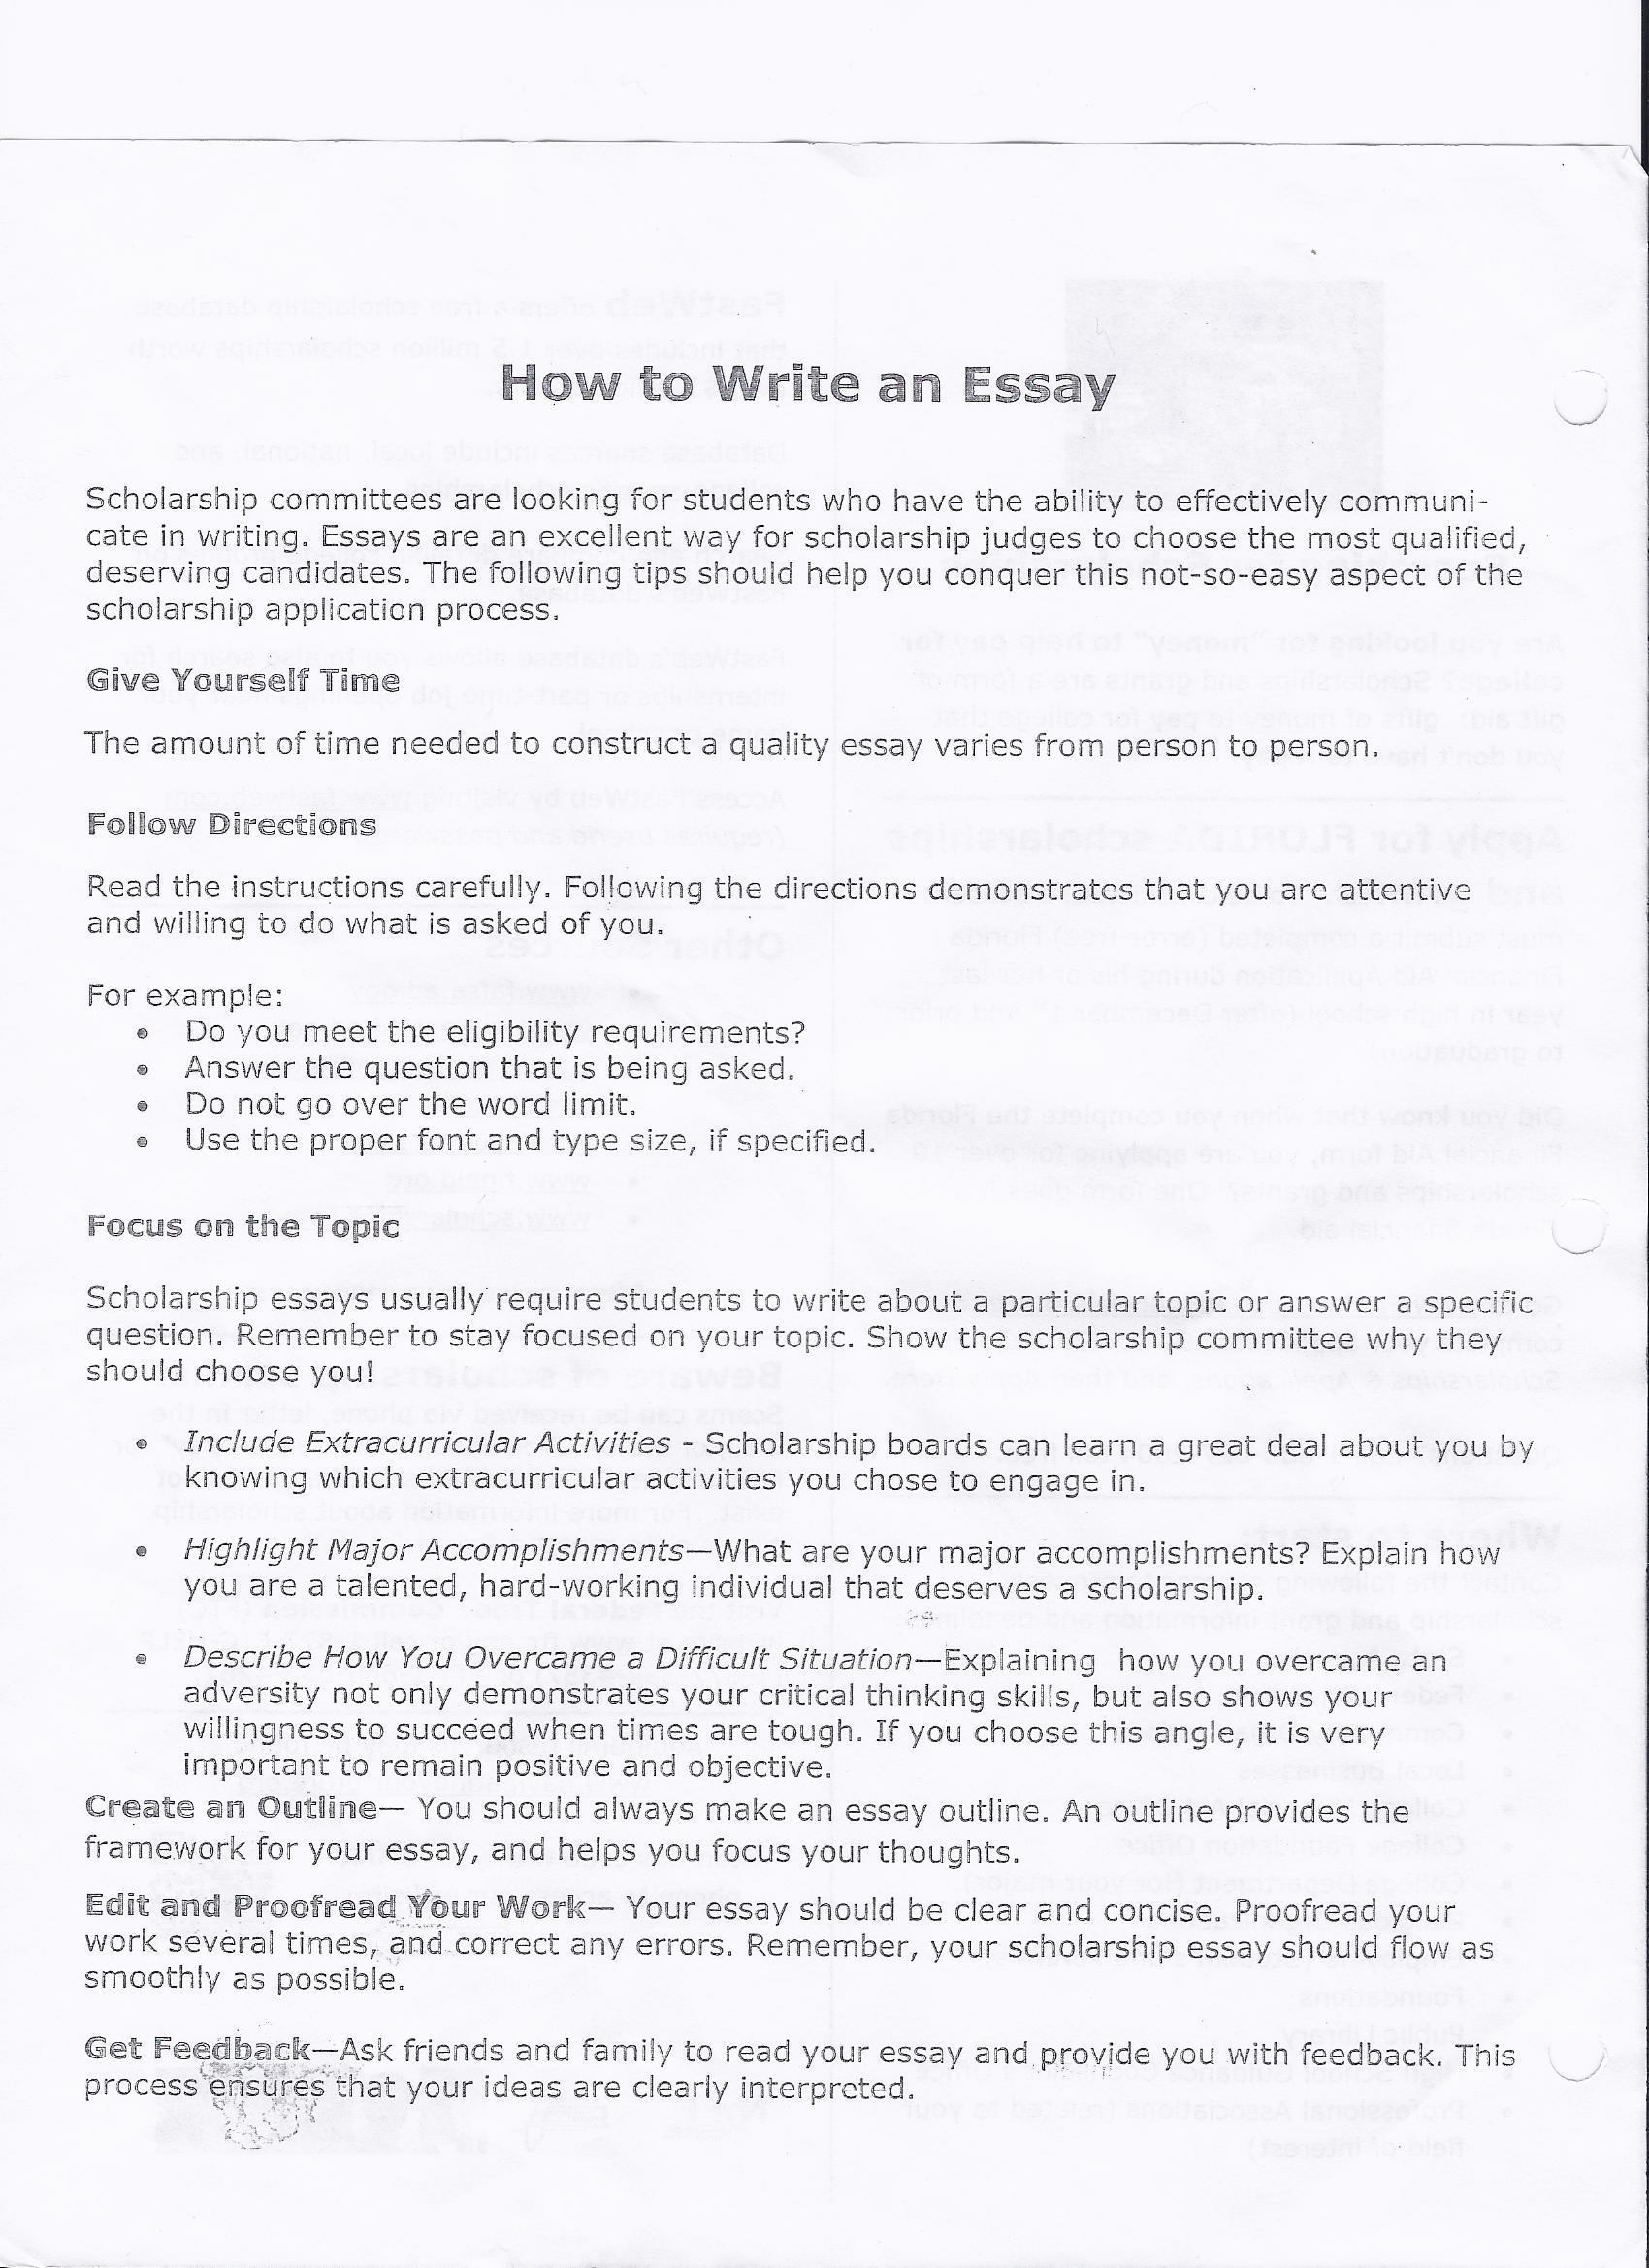 Essay writers